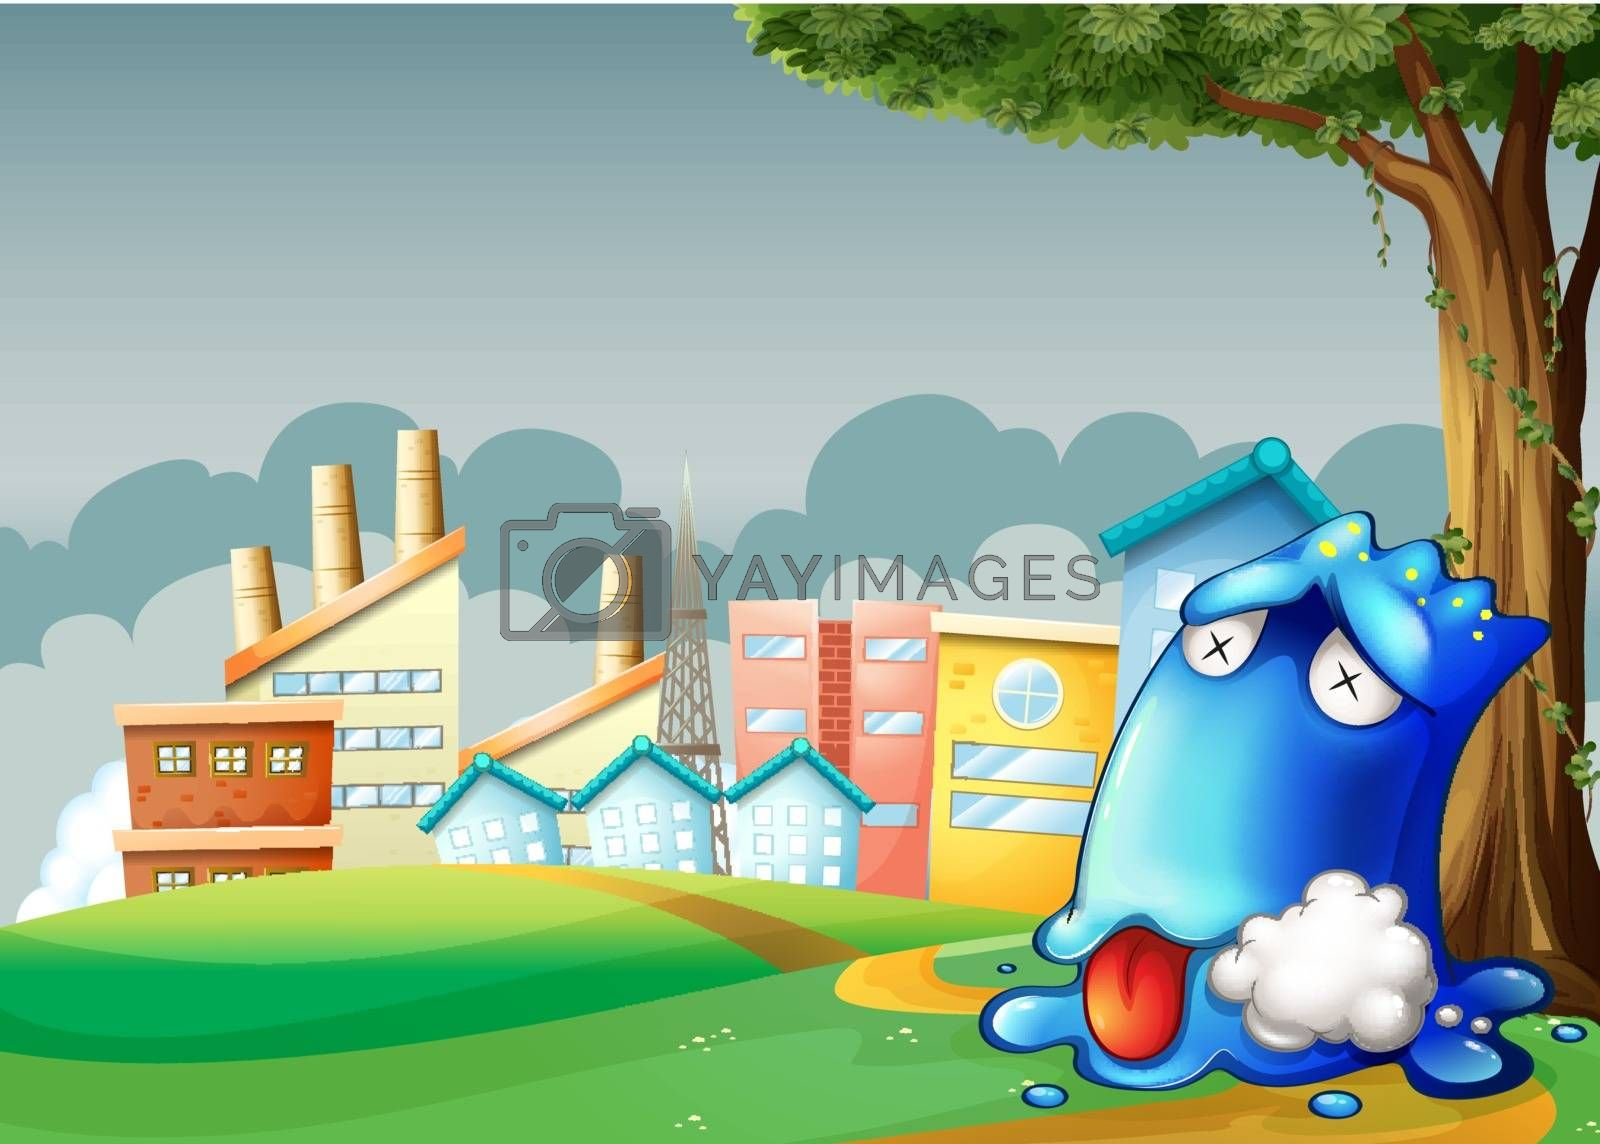 Illustration of a poisoned monster resting under the tree across the factories